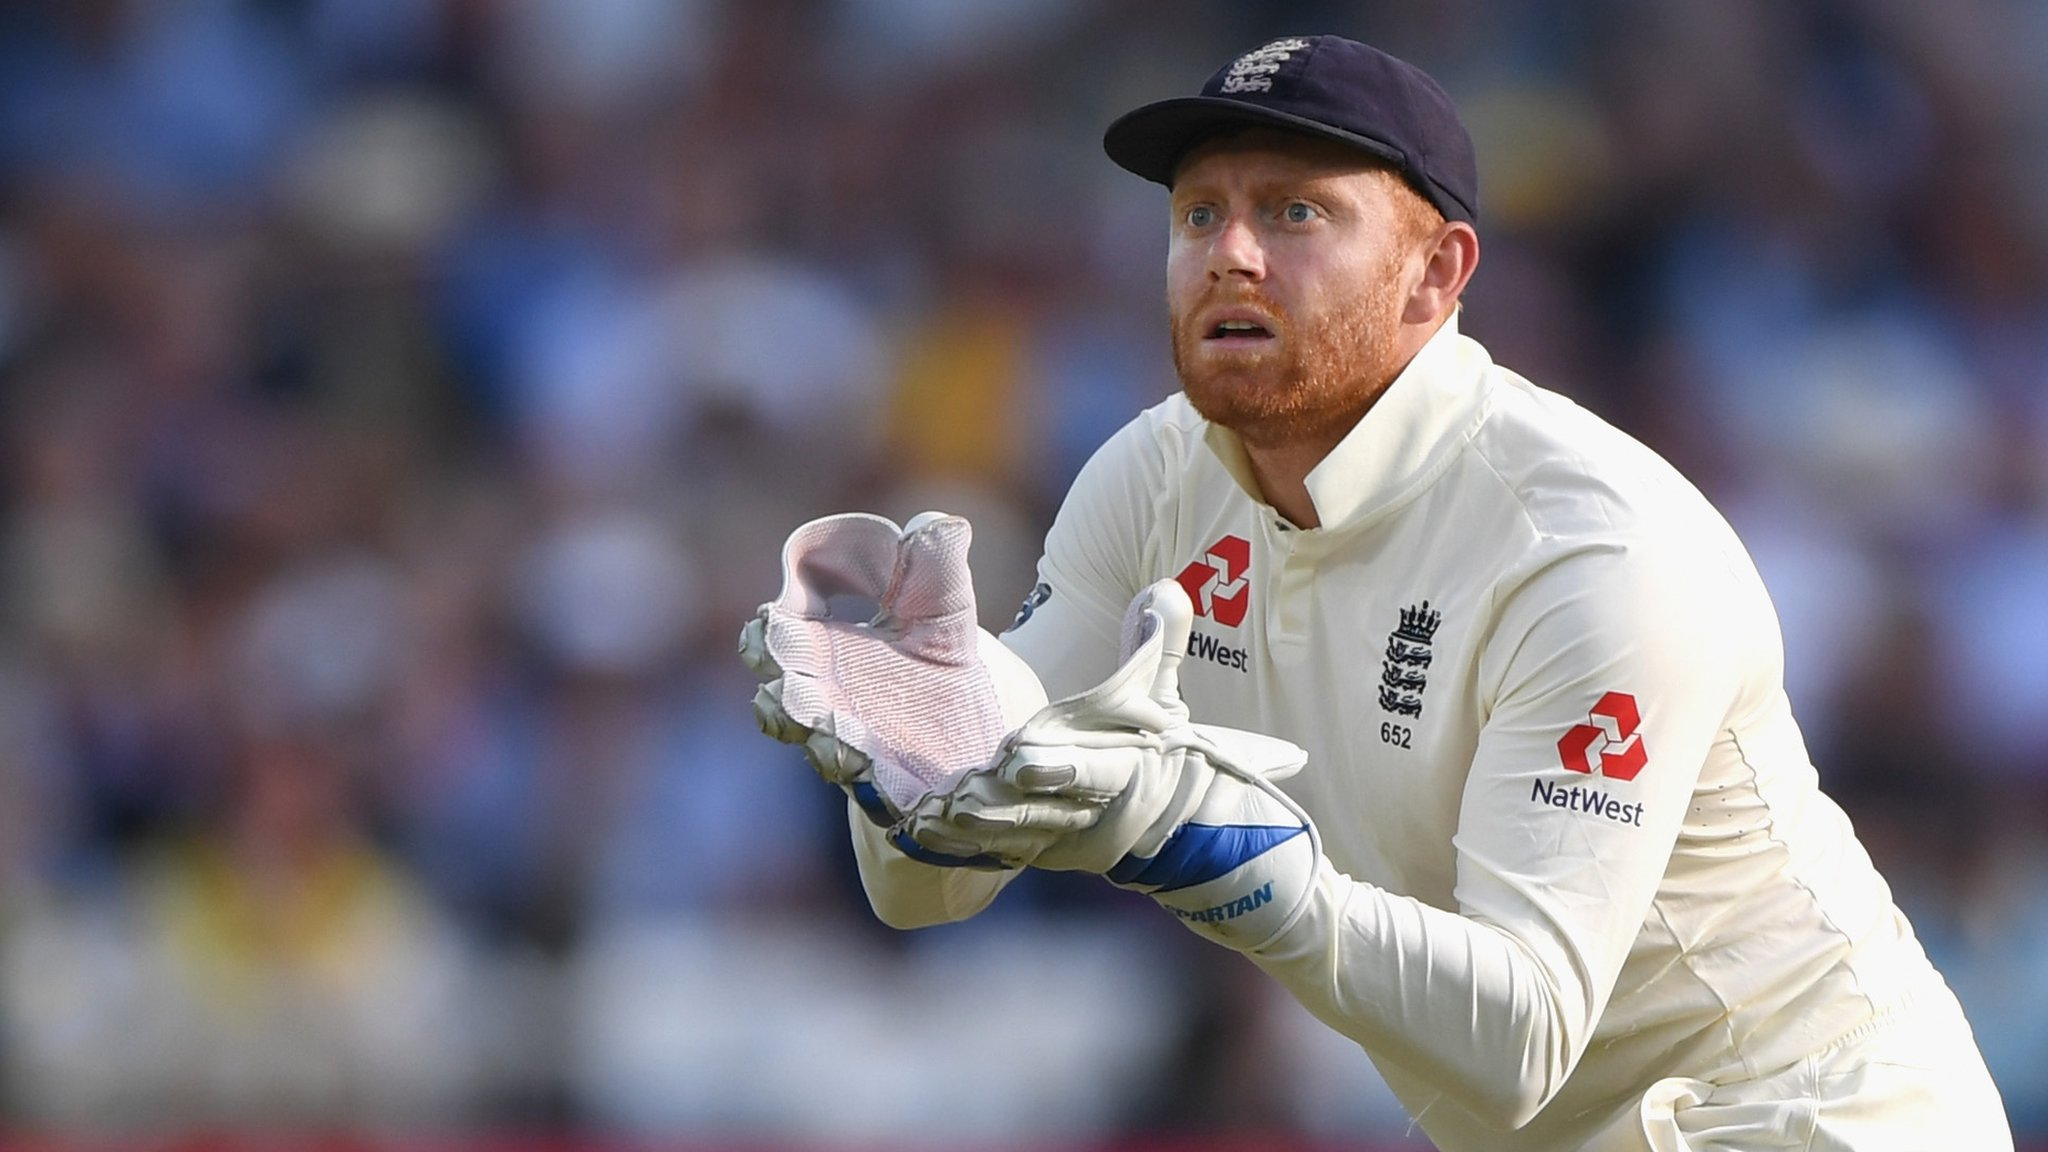 Sri Lanka v England: Jonny Bairstow has not 'accepted' playing as specialist batsman